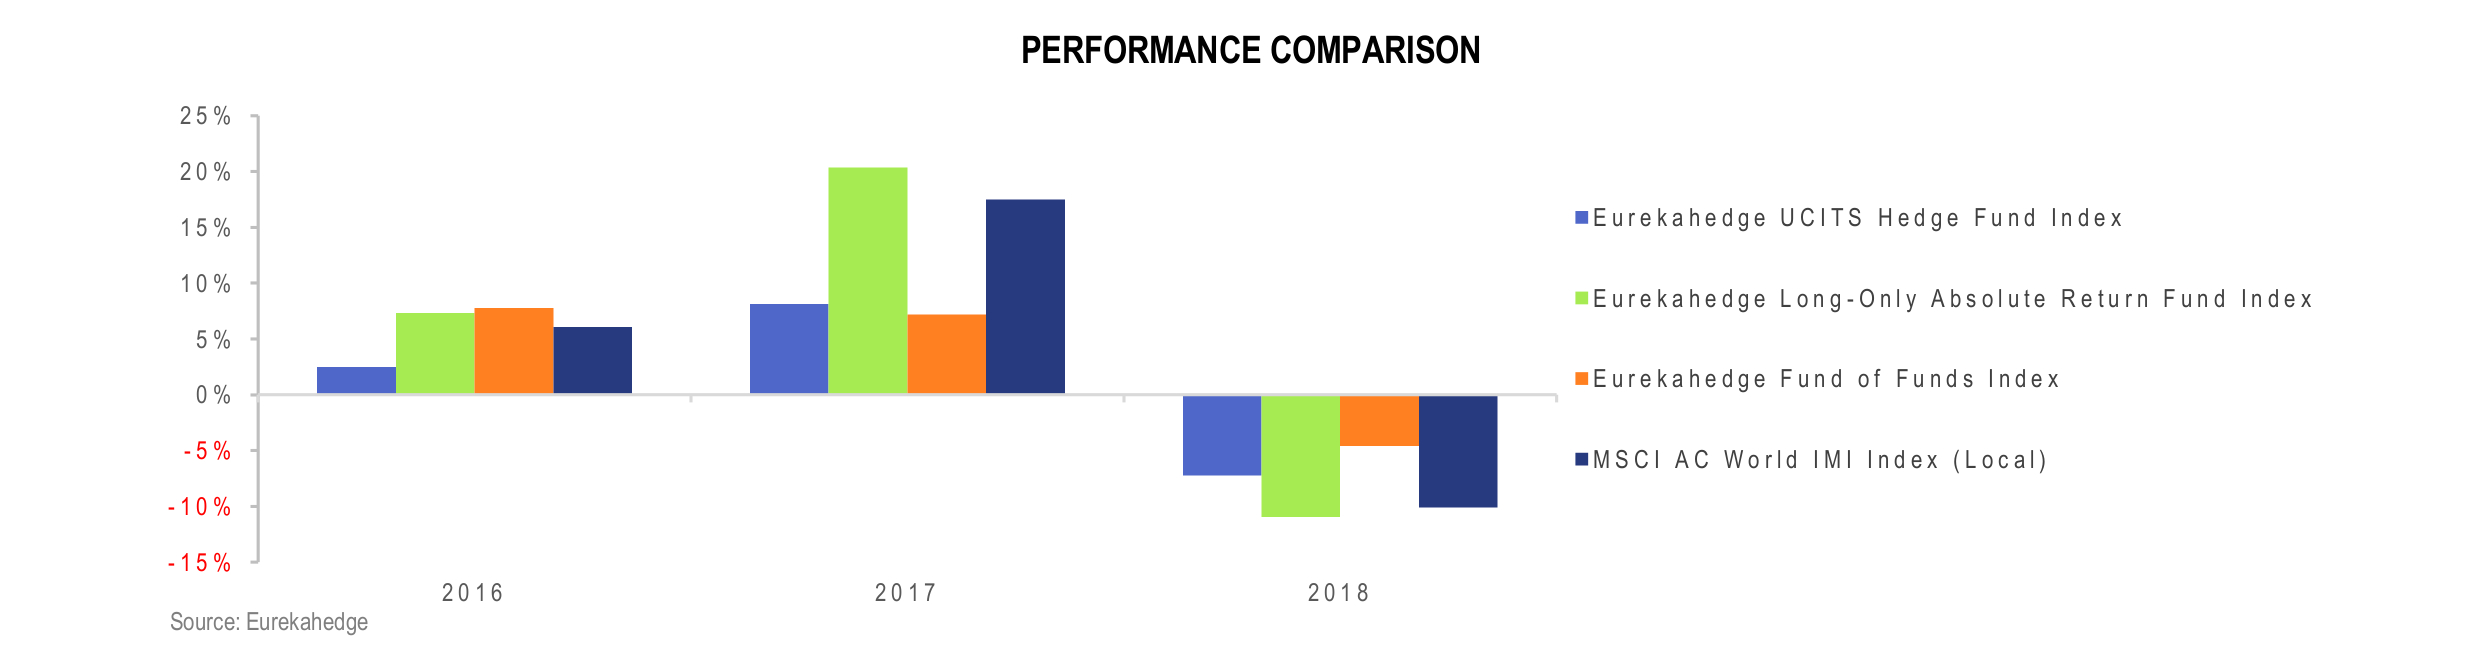 UCITS Hedge Funds Infographic February 2019 - performance comparison